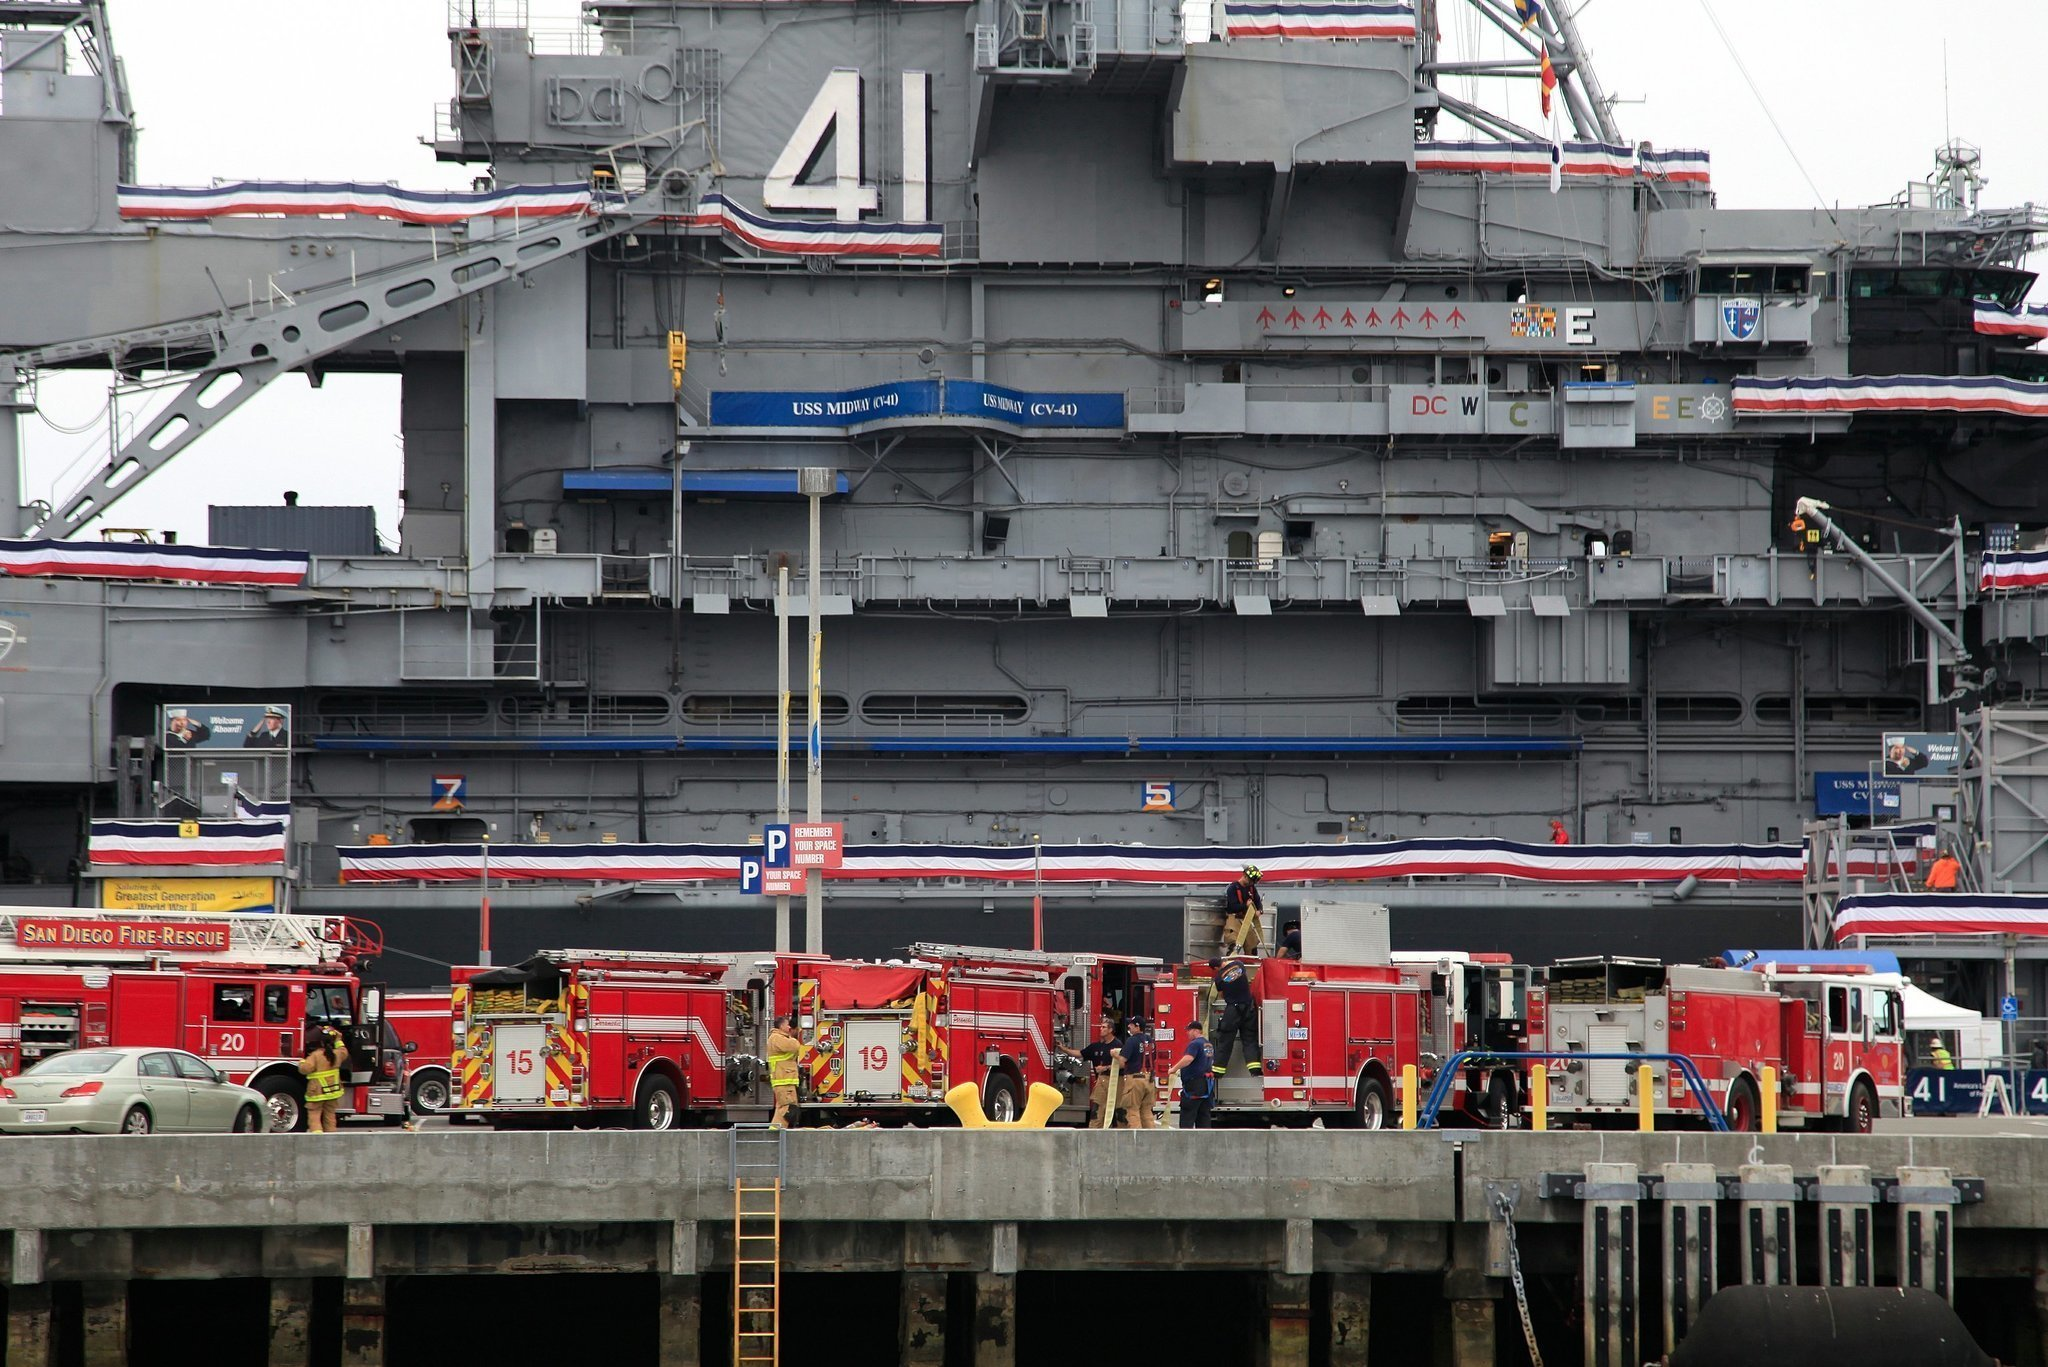 Cabrillo National Monument San Diego, USS Midway Museum catches fire - The San Diego Union-Tribune